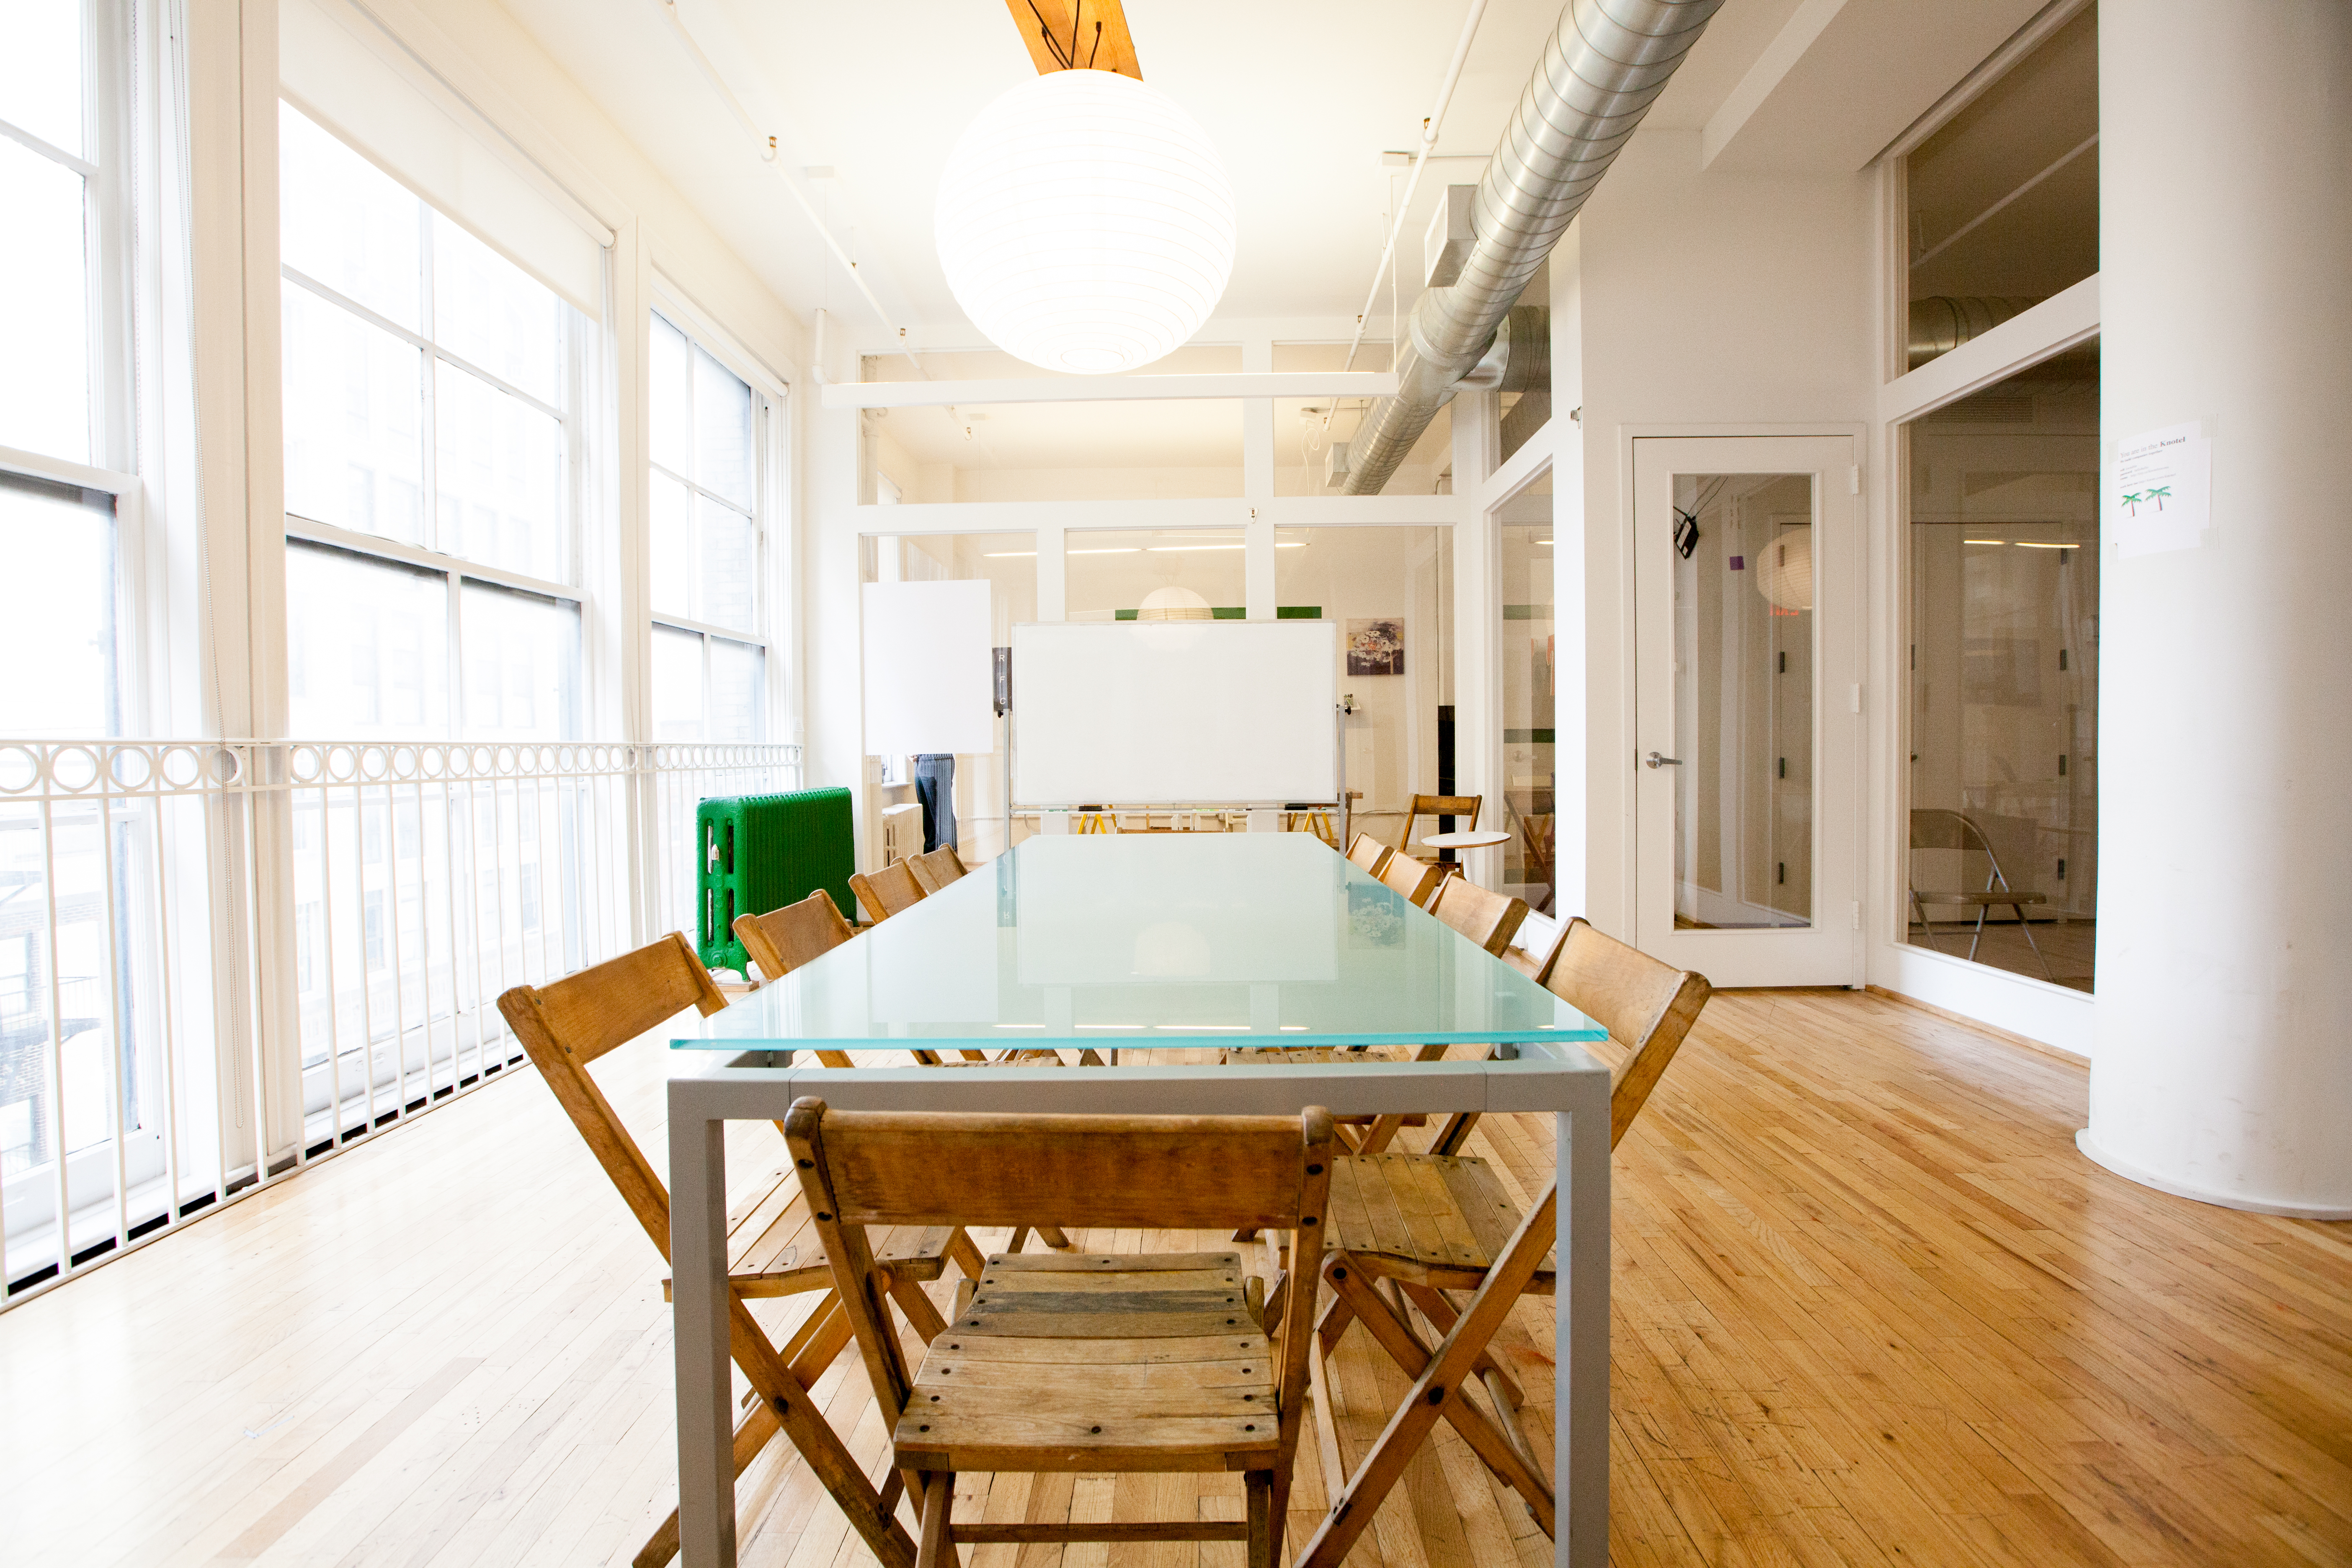 Helvetica Conference Room event space at Knotel - Flatiron in New York City, NYC, NY/NJ Area